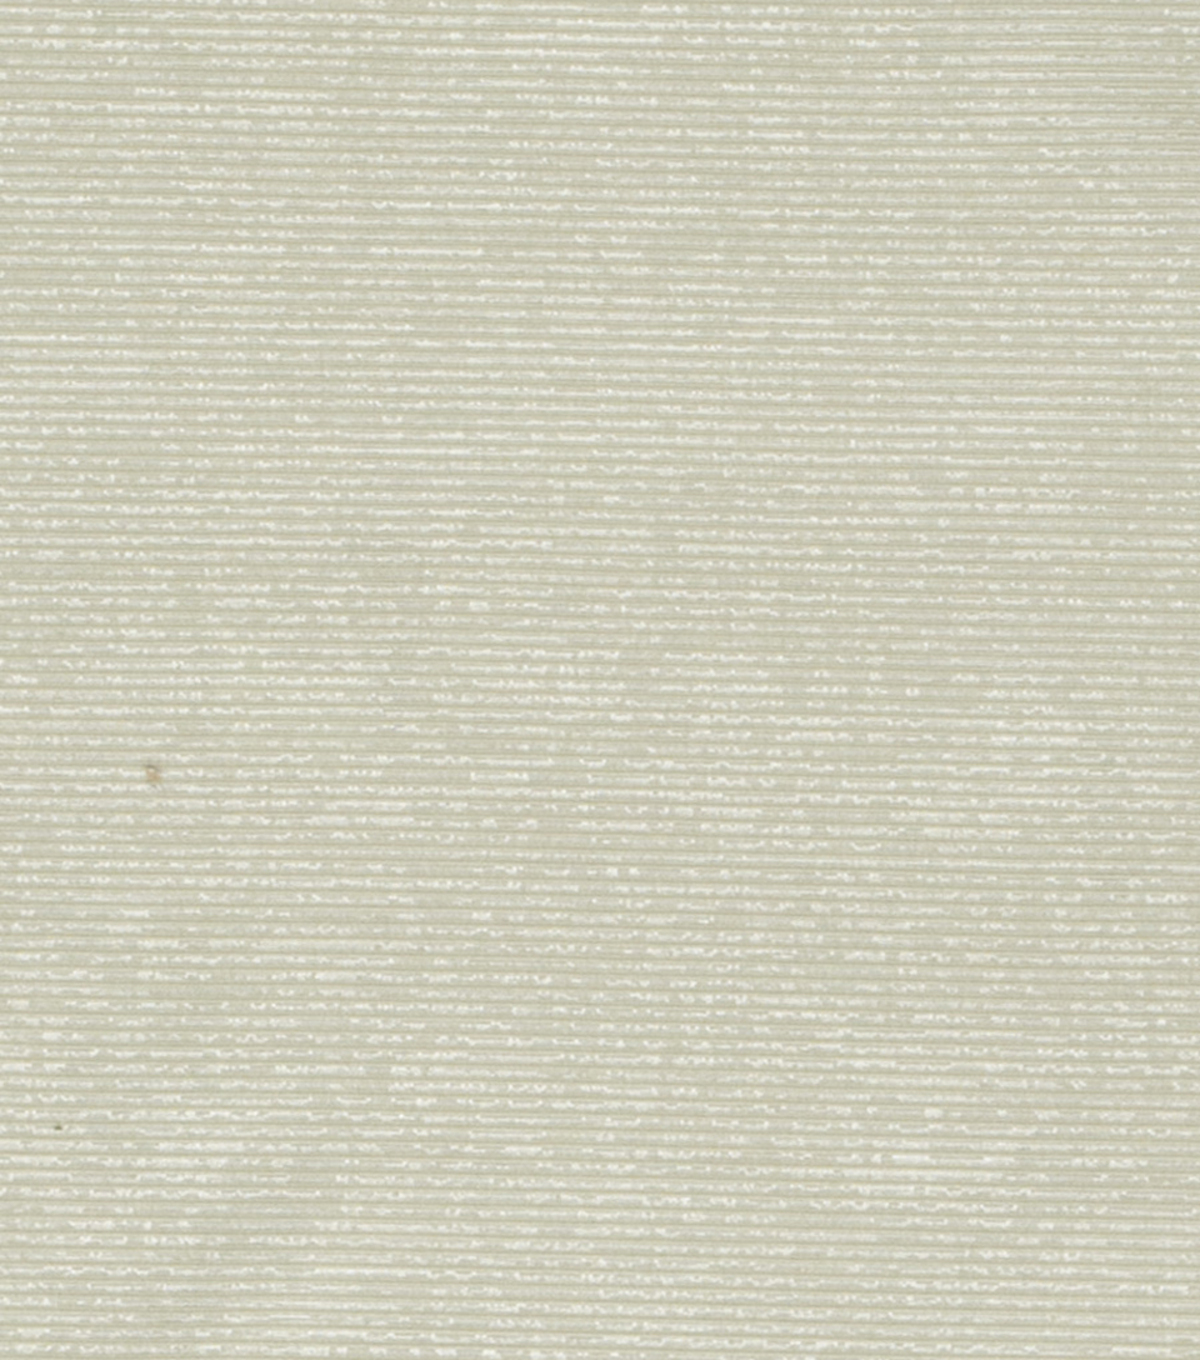 Home Decor 8\u0022x8\u0022 Fabric Swatch-Upholstery Fabric Eaton Square Camille Jade